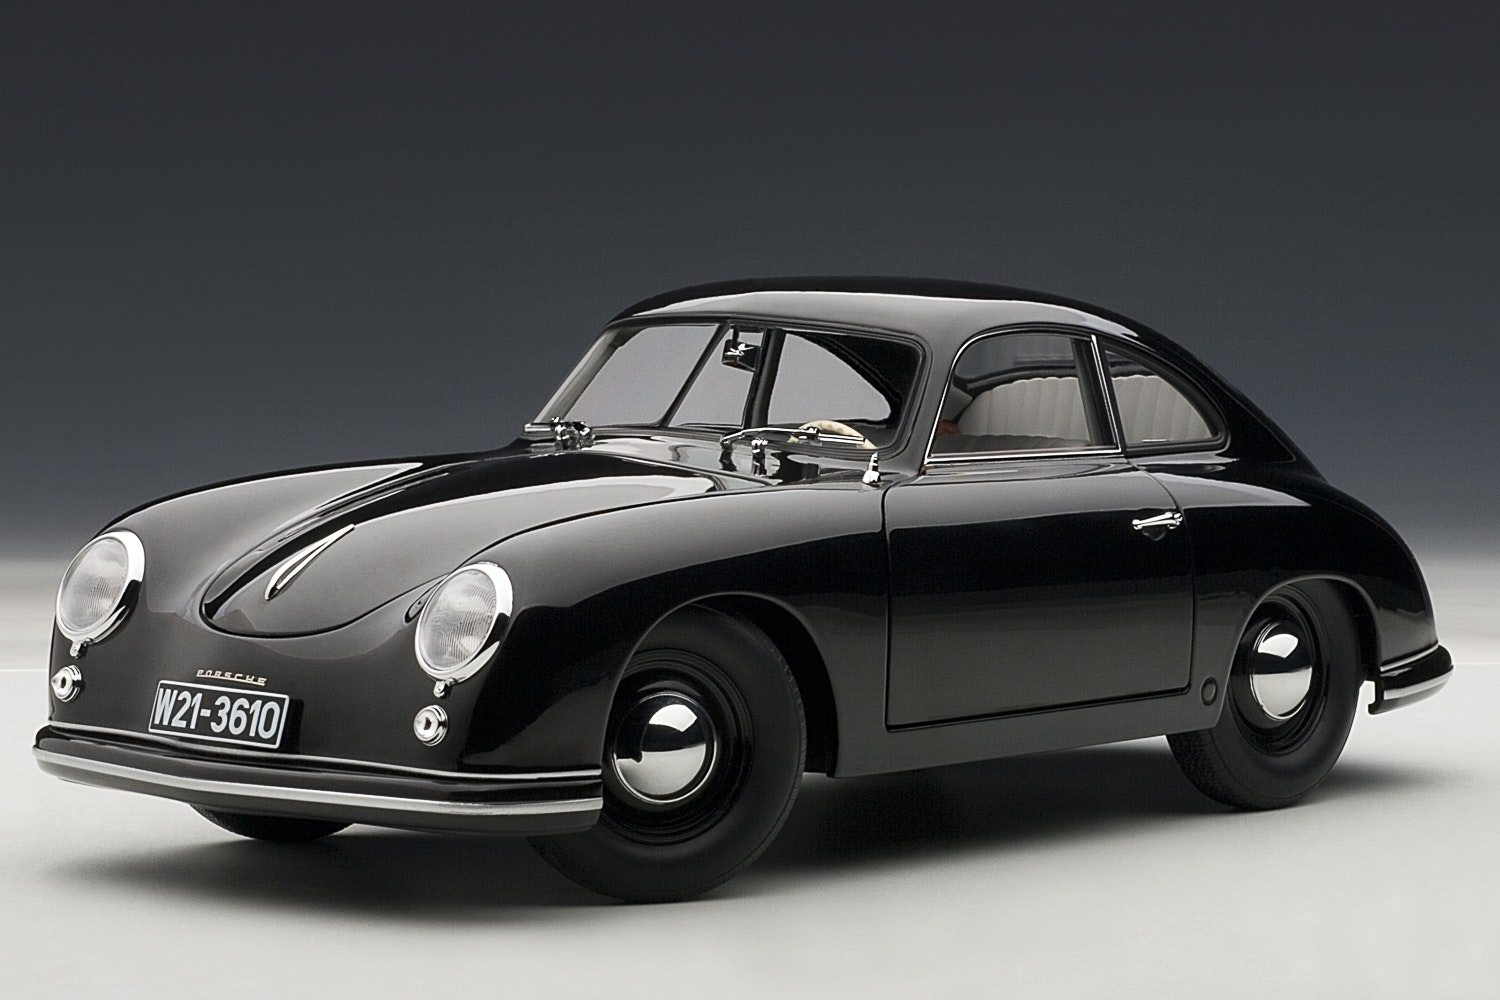 Porsche 356 Coupe 1950, Black